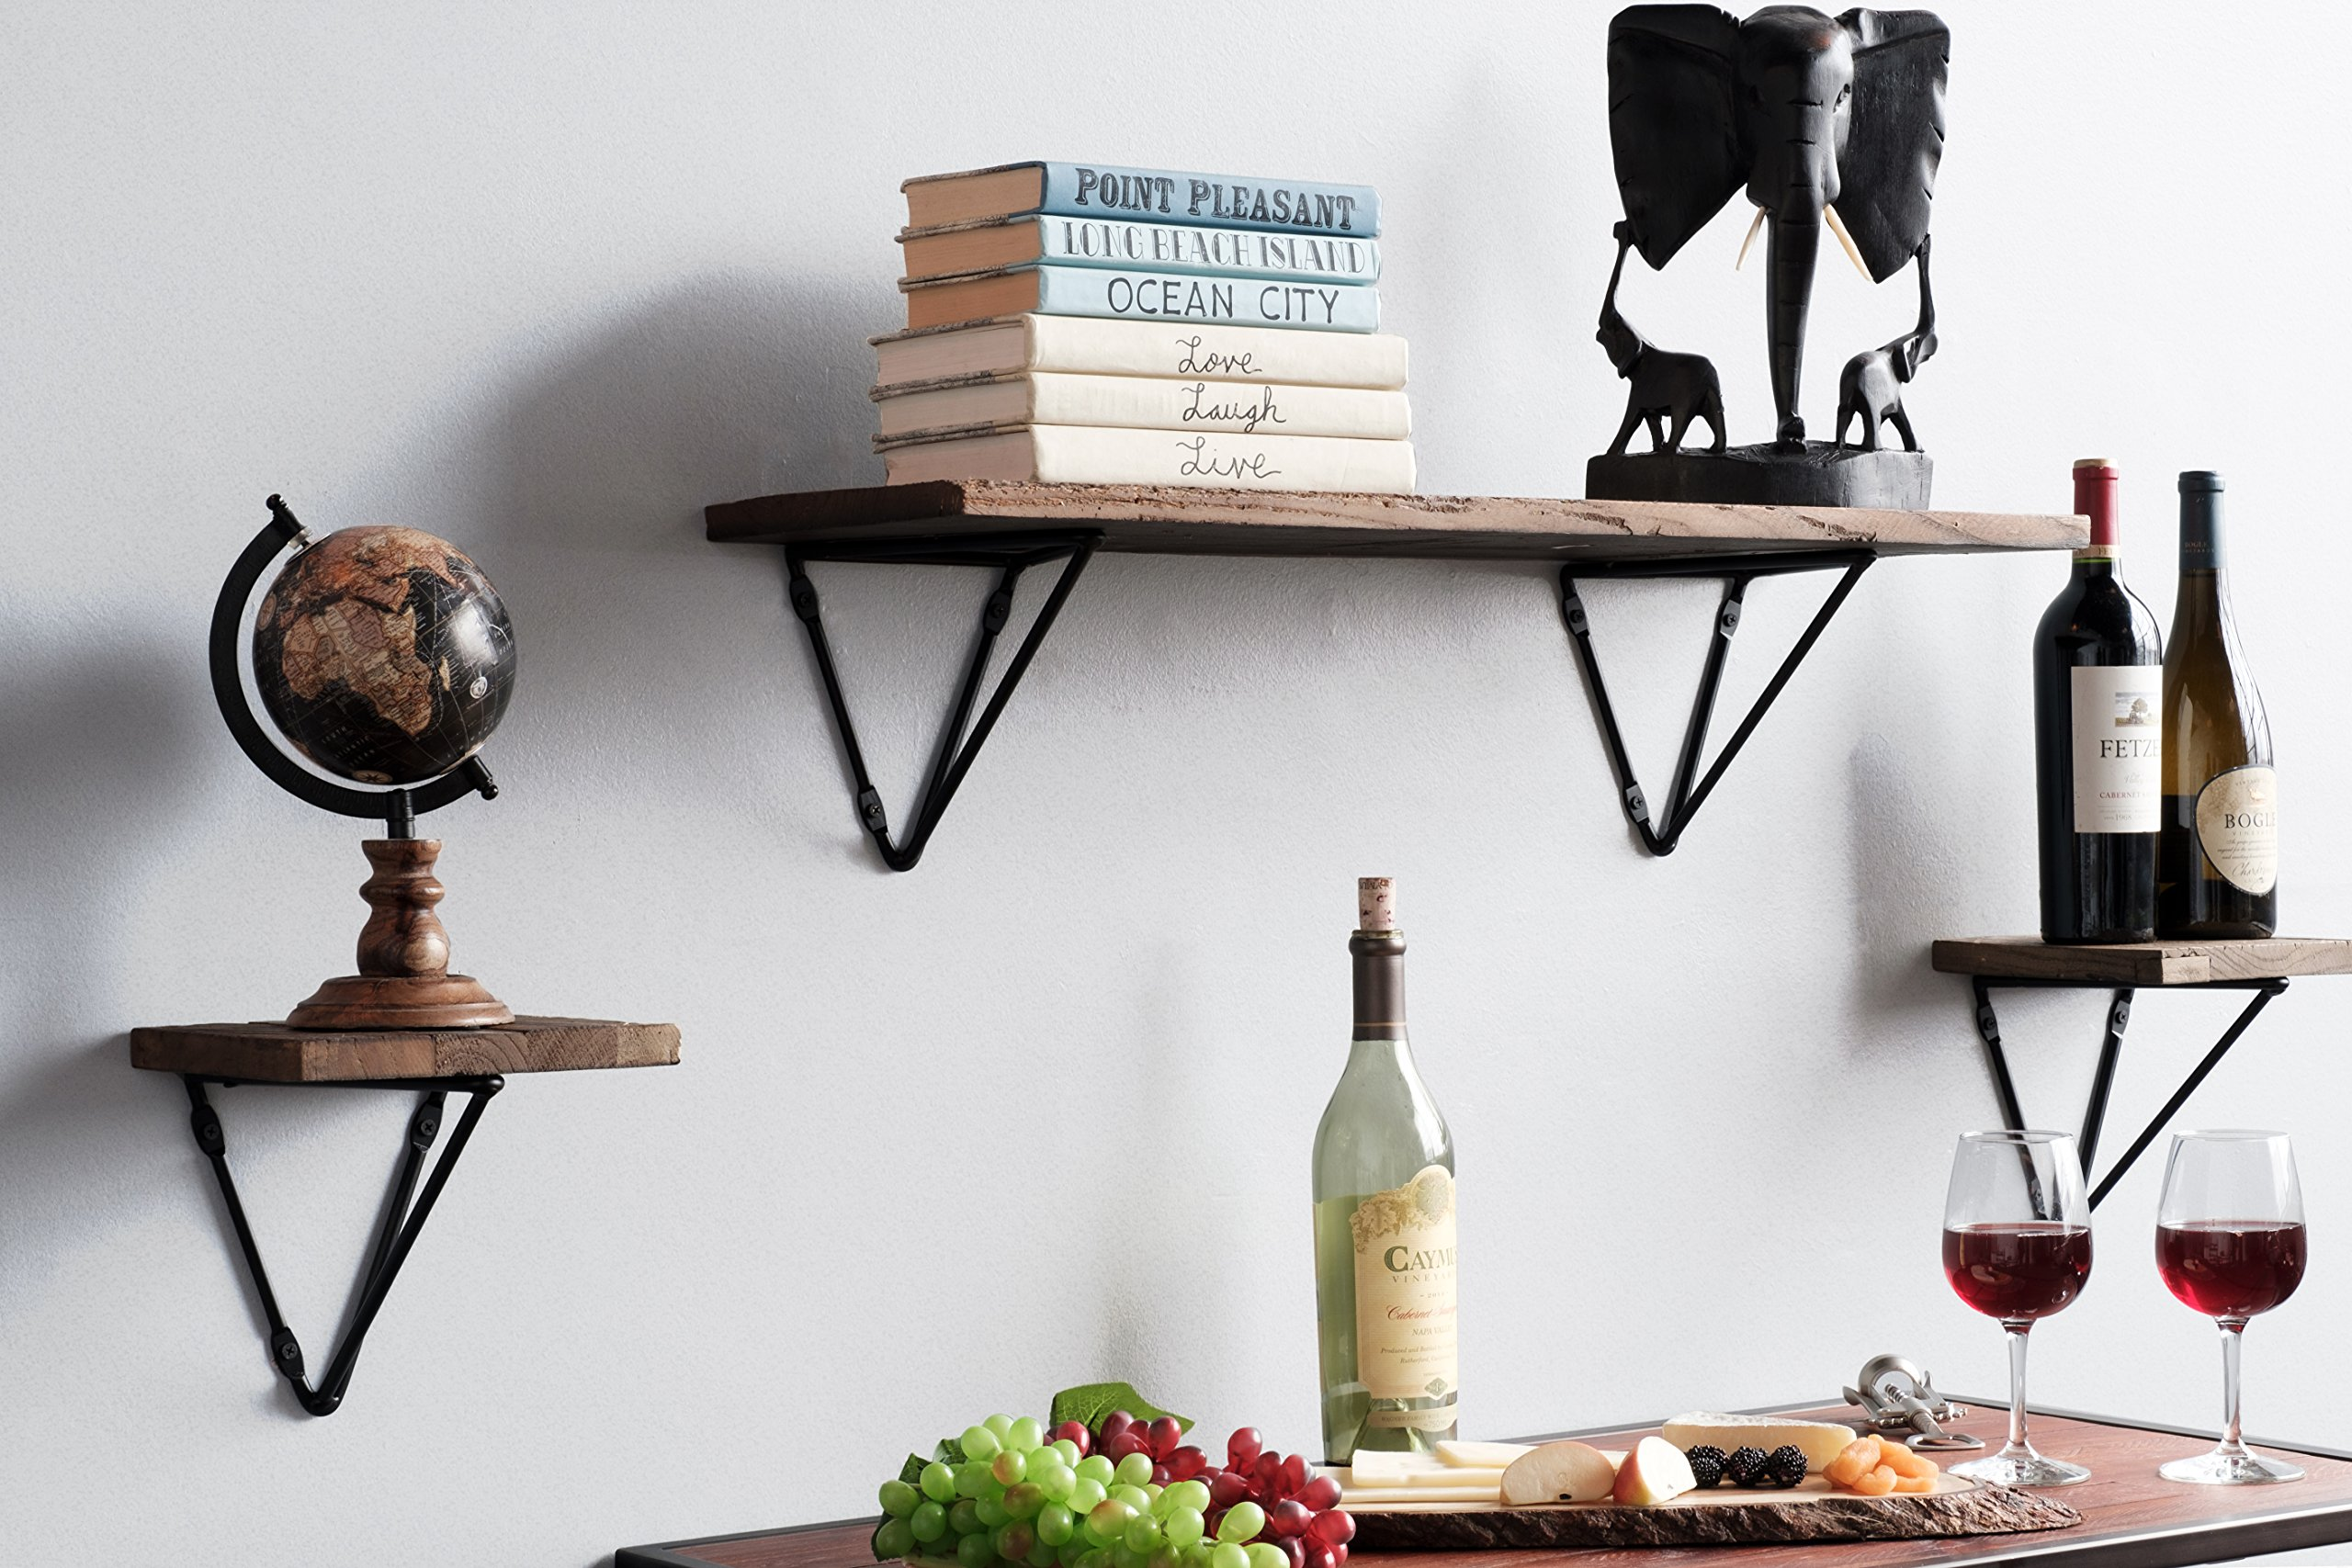 Wallniture Prismo Set of 2 Multiuse Wall Mount Triangle Shelf Brackets for Floating Shelves - DIY Shelving Brackets Geometric Design - Iron - Easy Installation: With this set of 2 brackets, you can create a floating wall shelf, storage solution and so much more. These brackets are simple to install and comes with strong metal anchors for a sturdier construction on any wall material, including drywall. Custom Size Done Right: Each bracket for shelf is 10.50 x 8.50 x 7.50 x 6 inches and the heavy-duty iron material is perfect for creating a variety of home decor, storage and organization products built to specifically fit your needs. Rustic Home Decor: Add a touch of rustic style and industrial flair to your living room, dining room, kitchen, bathroom, entryway, home office, bedroom or even nursery as bookshelves. These brackets blend beautifully with any room and design. - wall-shelves, living-room-furniture, living-room - 918nWRIwQ6L -